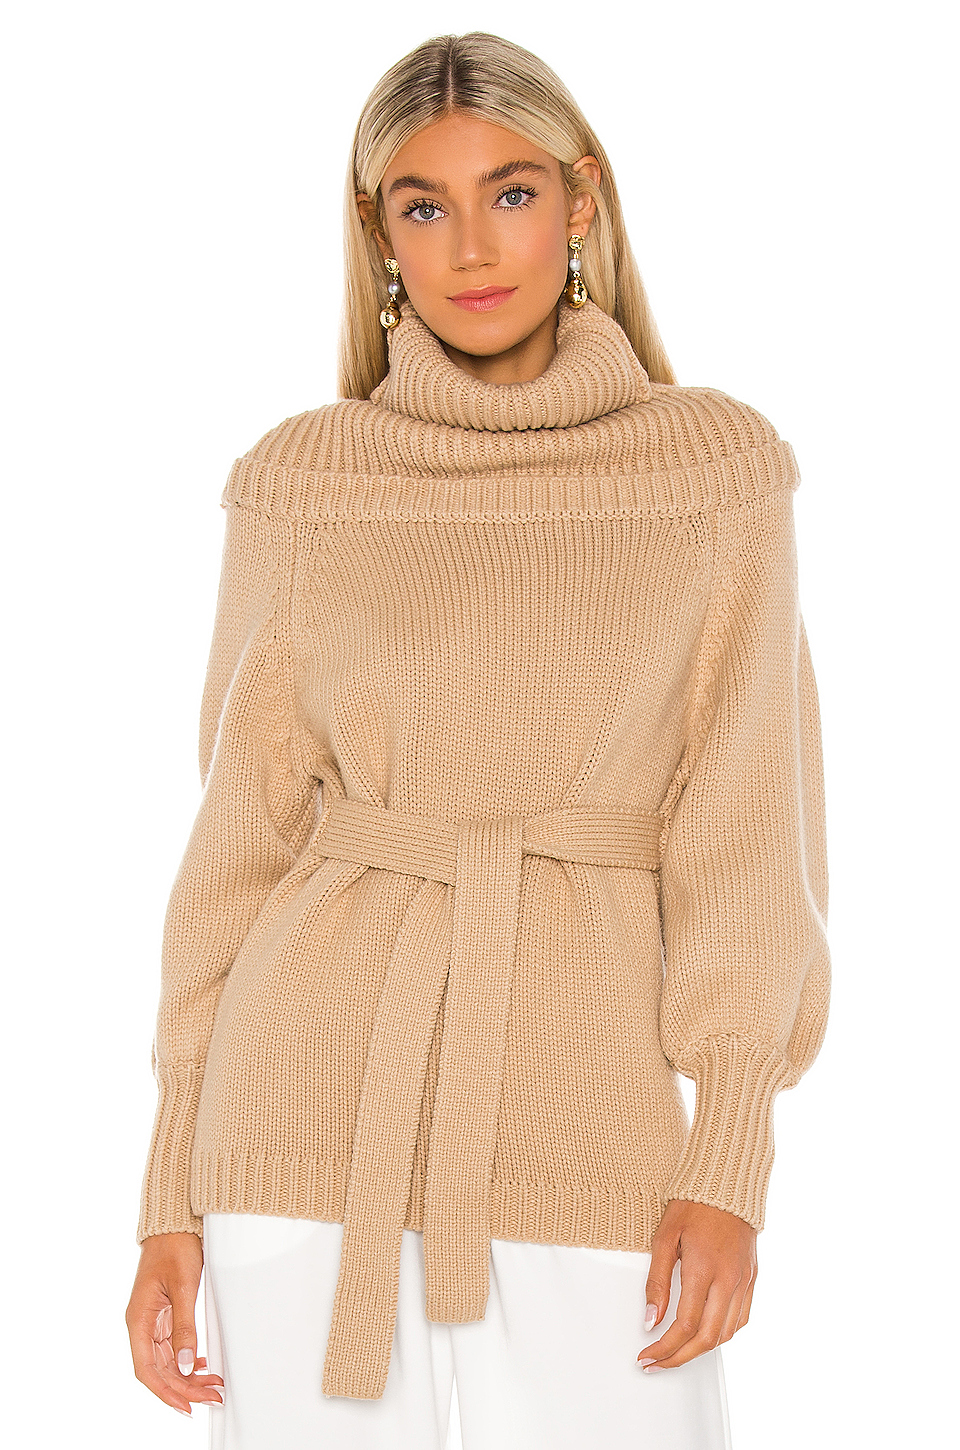 Cozy gifts for women: classy wool sweater